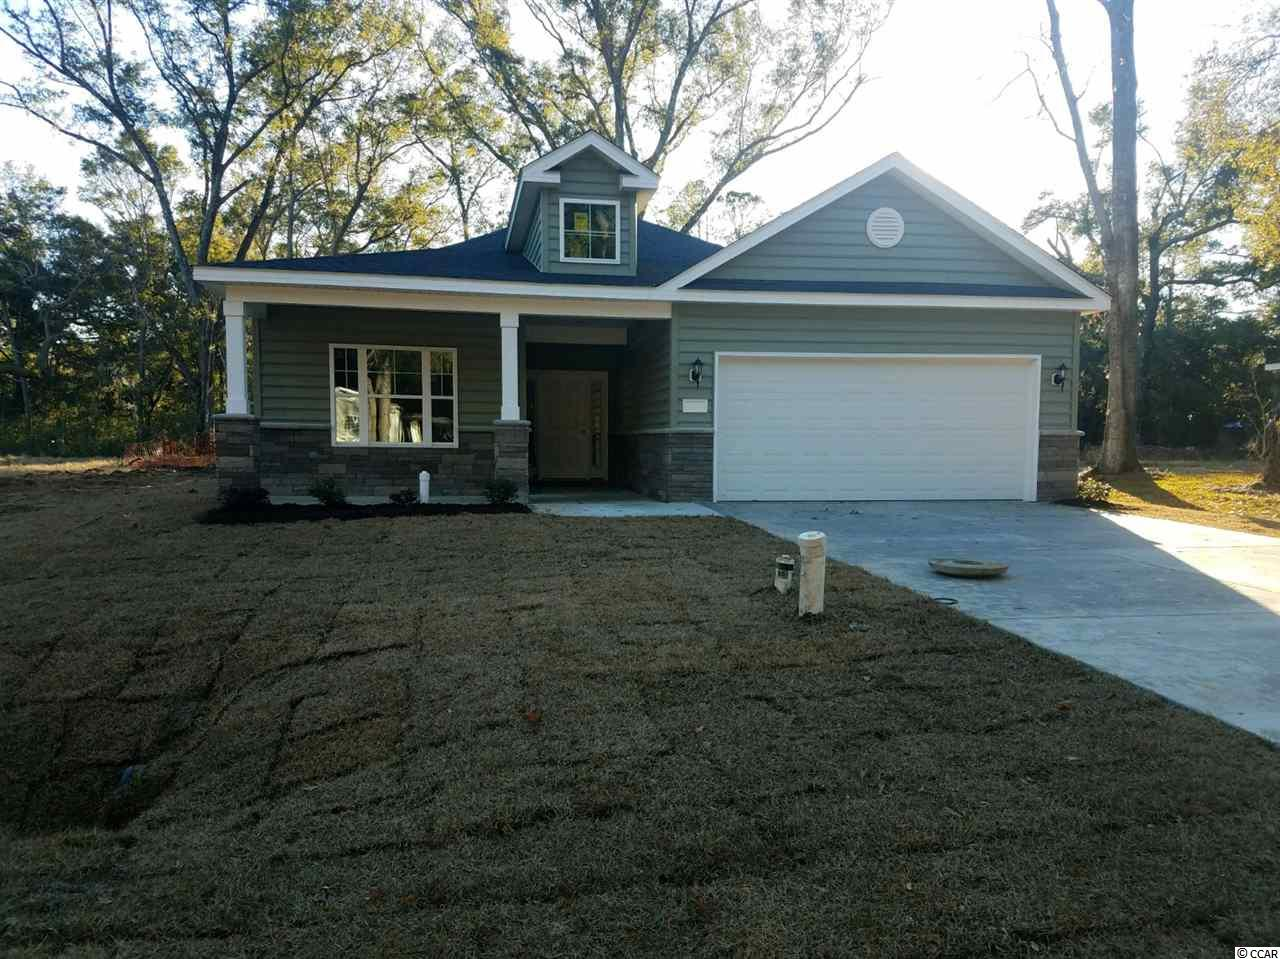 This is your opportunity to own a Brand New Home ,on DEEDED LAND, in PAWLEYS ISLAND With NO HOA! Enjoy the old oak trees, and quaint Pawleys Island setting.Enjoy the rocking chair porch, gourmet Kitchen equipped with stainless steel appliances, upgraded cabinets, granite, ceramic tile floors. Hardwood Flooring, carpet in the bedrooms. This home is almost complete and ready for Move In! Motivated Seller- buyers incentive available! Agent on Duty Mom,Thurs-Sun, Tues&Wed by appointment.